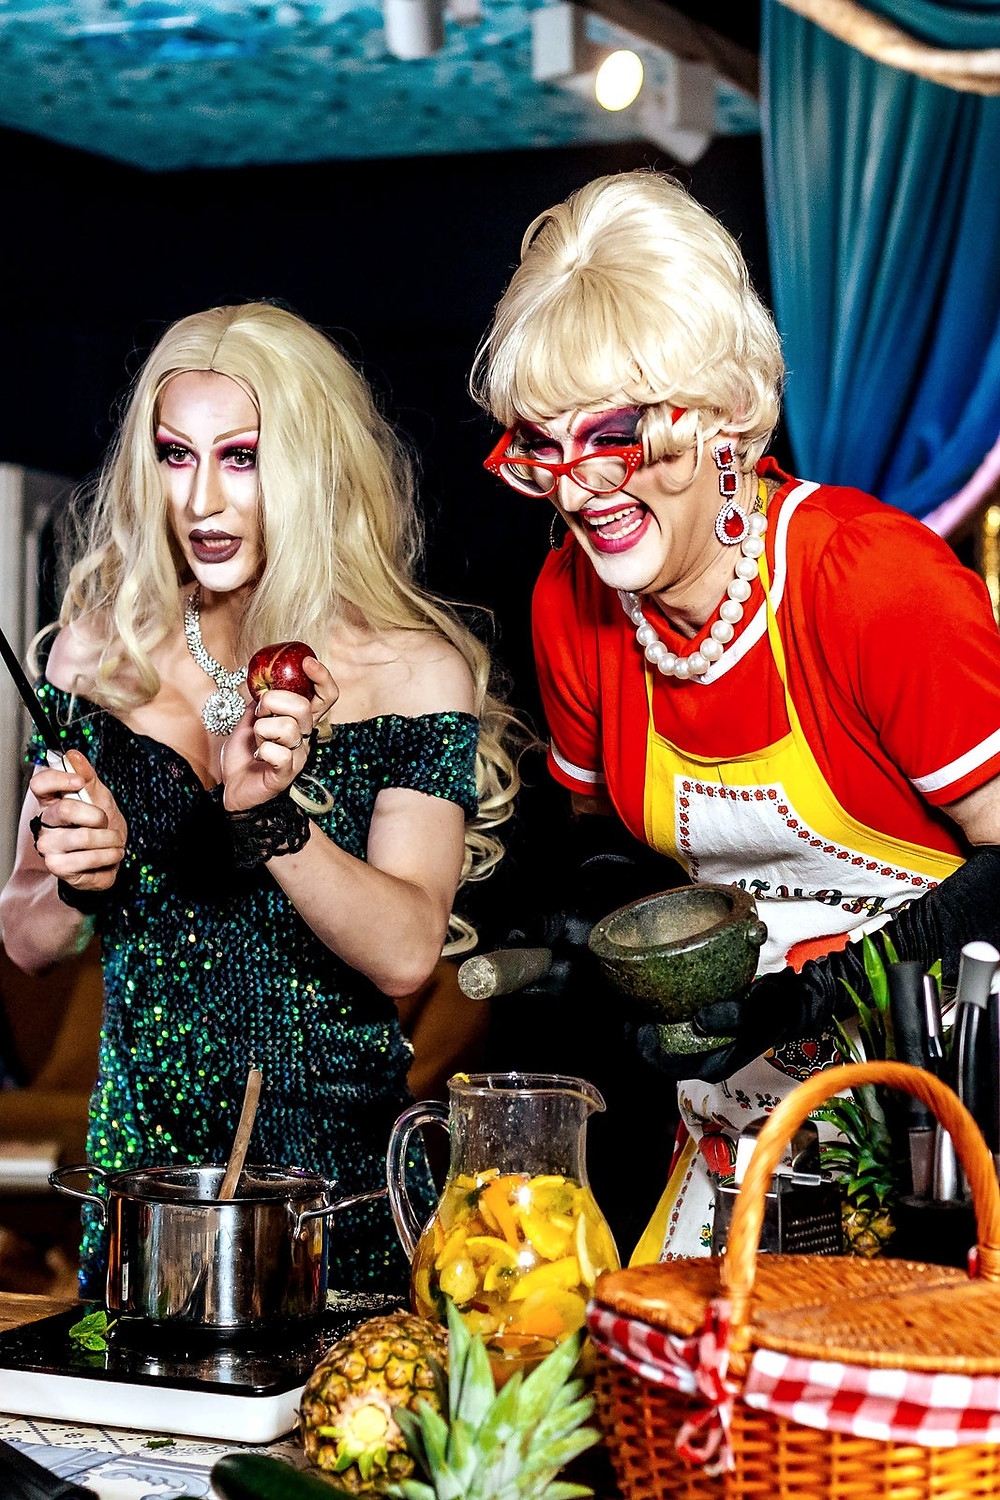 Sangria and Secrets with Drag Queens online experience from Airbnb